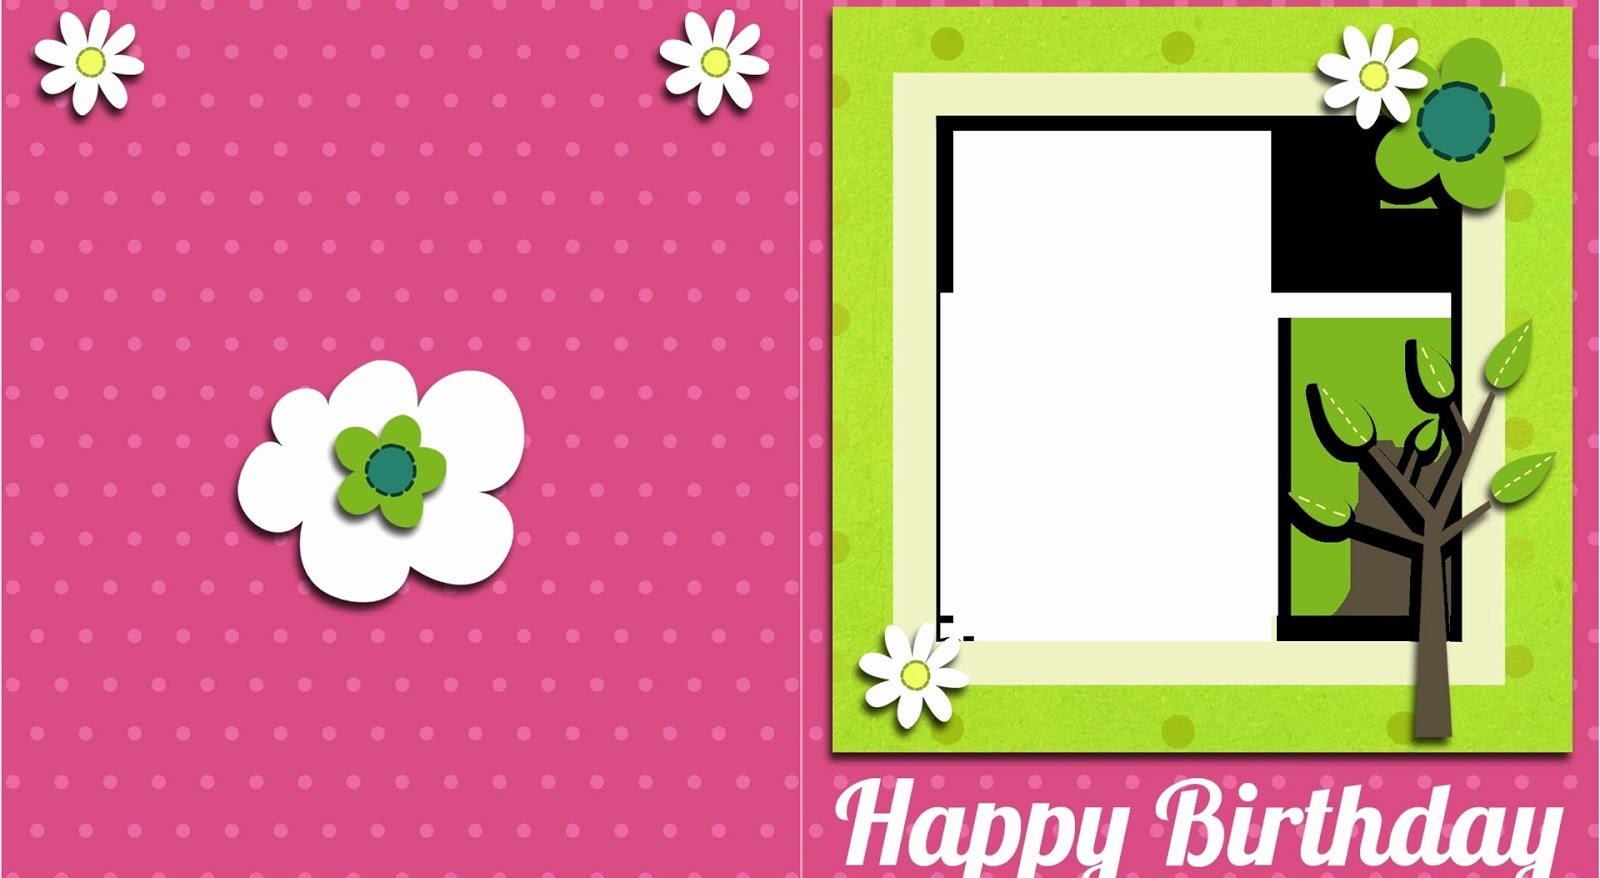 Happy Birthday Card Template Best Of Wish You A Very Happy Birthday Words Texted Wishes Card Images